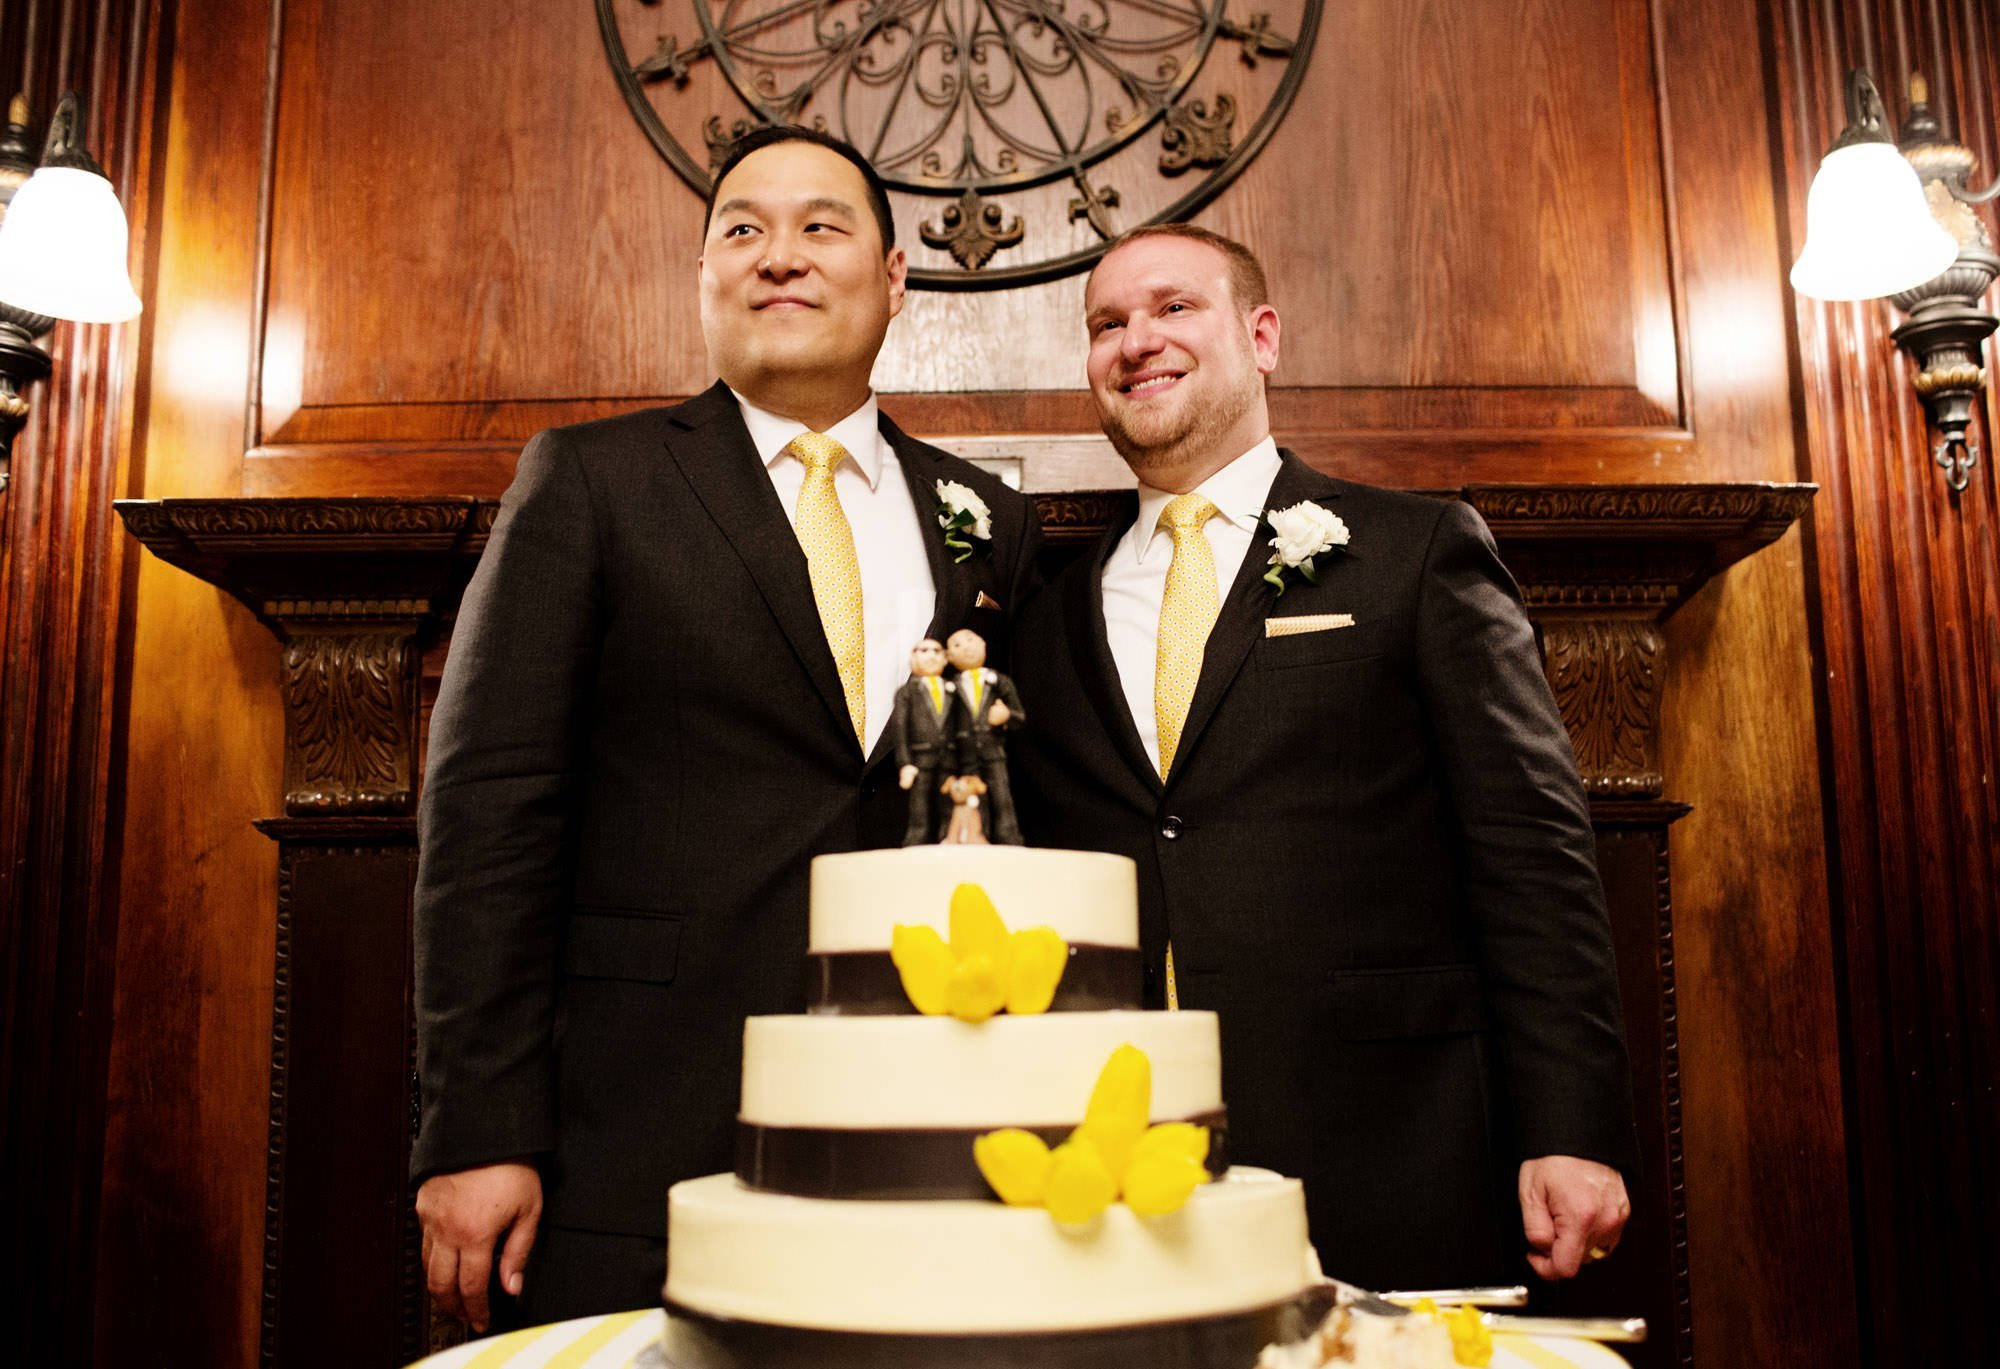 The two grooms prepare to cut the cake during their Oxon Hill Manor wedding.